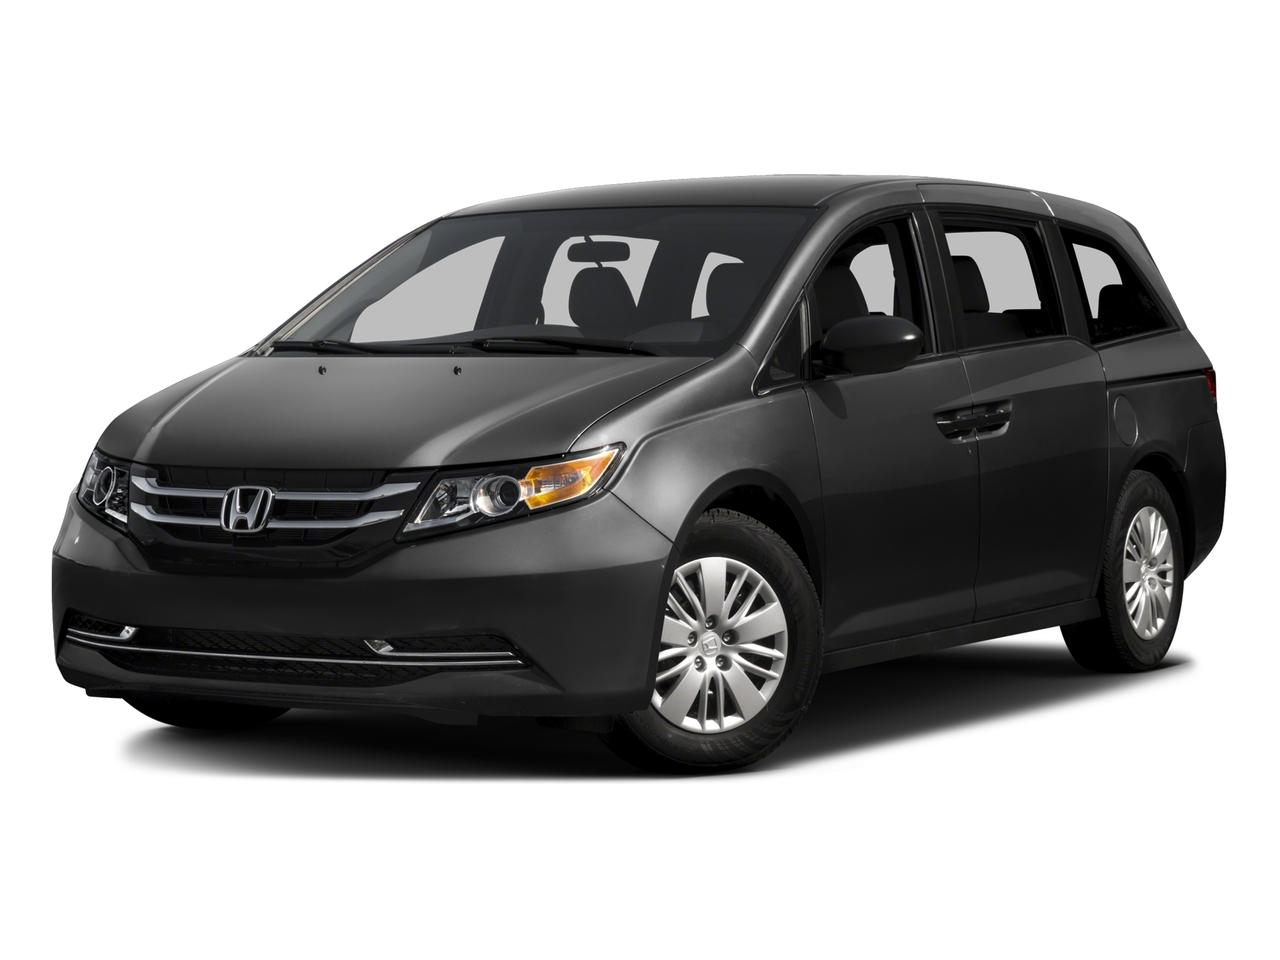 2016 Honda Odyssey Vehicle Photo in Muncy, PA 17756